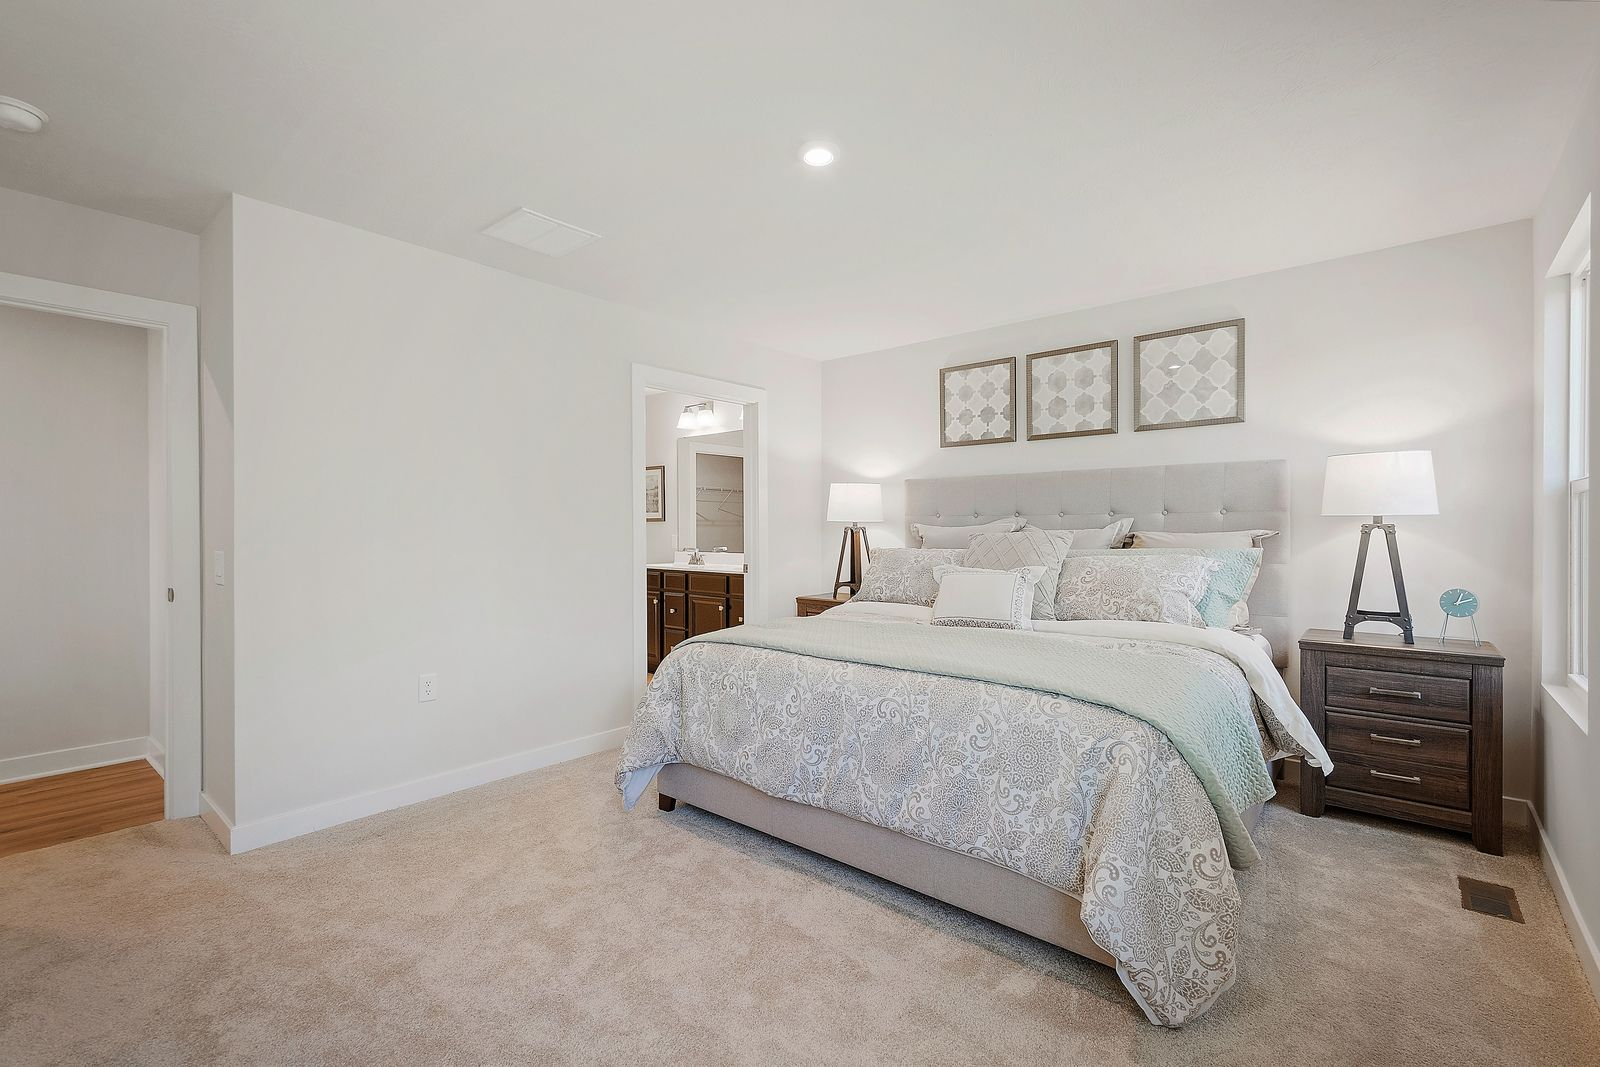 Bedroom featured in the Dominica Spring Basement By Ryan Homes in Washington, WV